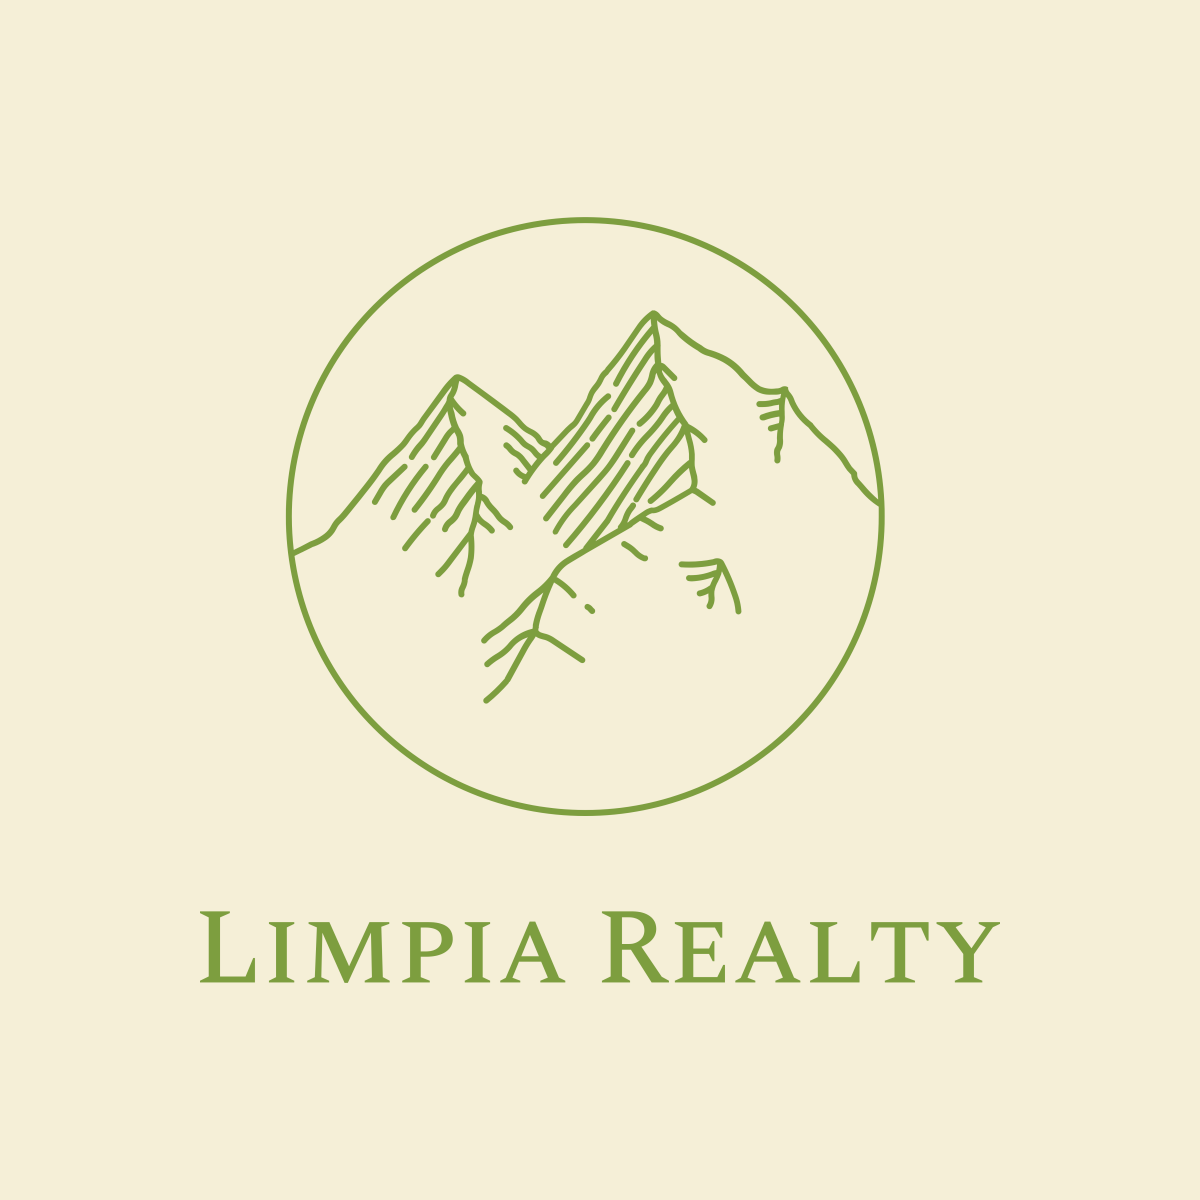 Limpia Realty